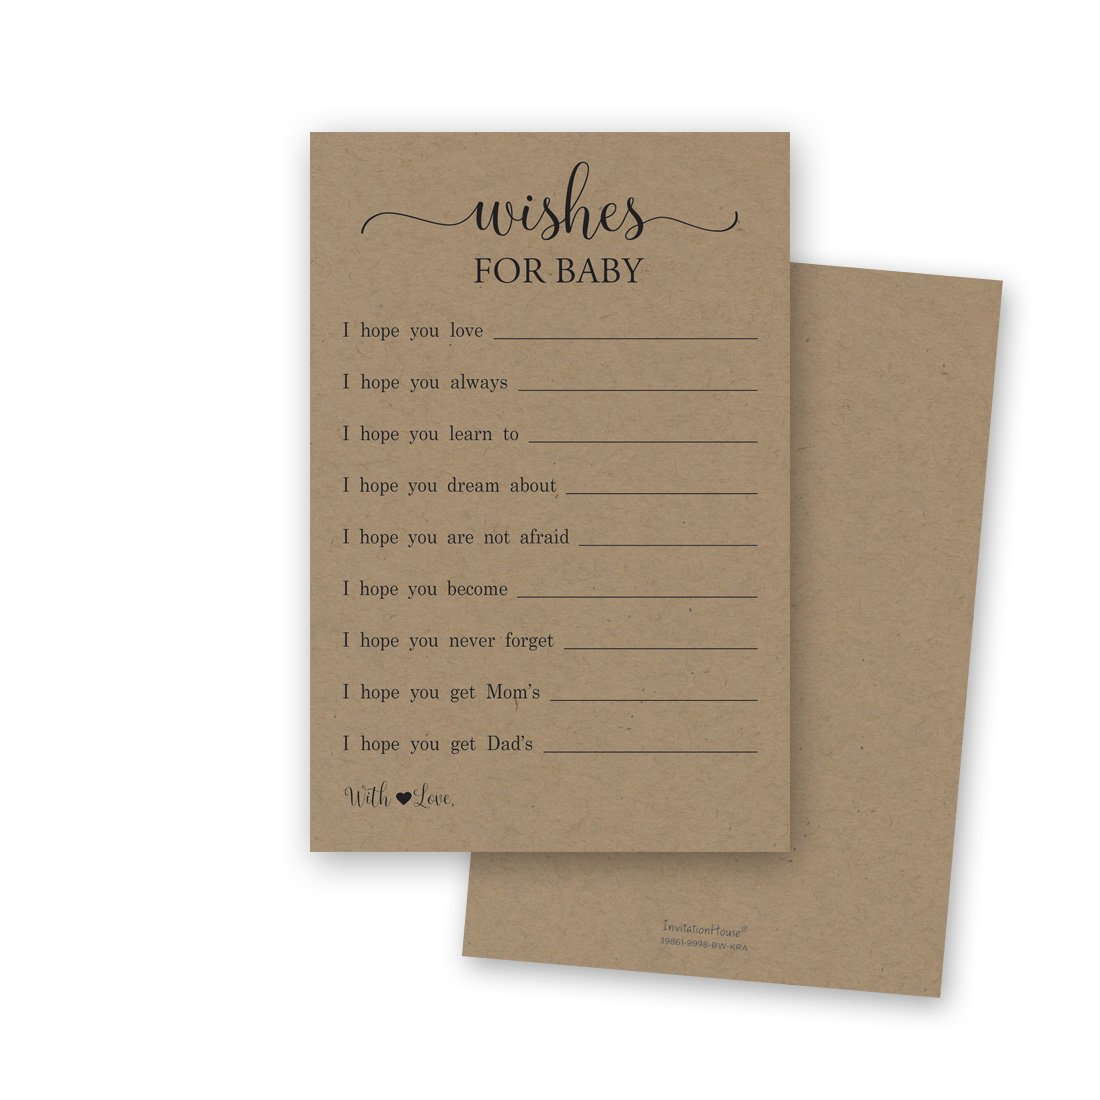 48 Rustic Kraft Wishes for Baby Cards – Well Wishes for Boy or Girl – Baby Wishes Cards by InvitationHouse (Image #1)